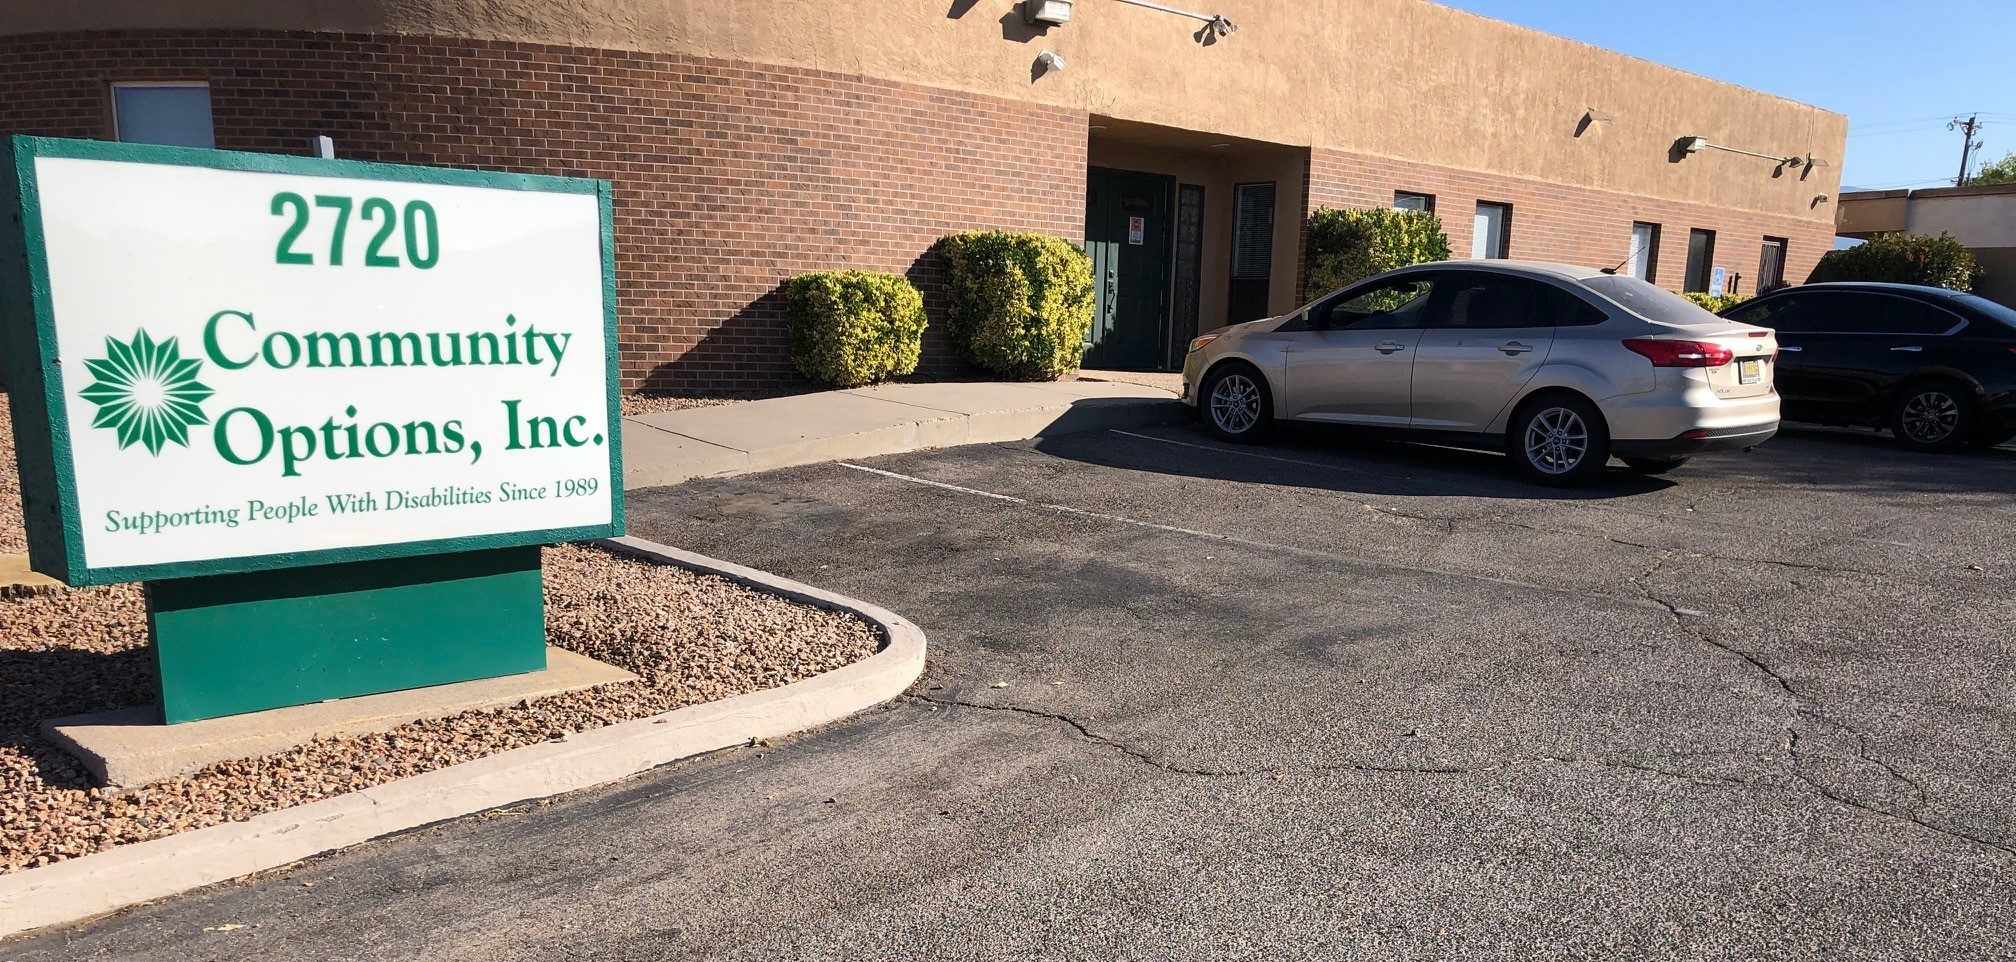 Community Options, Inc. of Albuquerque was established in 1999 to provide residential and employment services to individuals with disabilities in the Metro and Northeast Region of Central New Mexico.